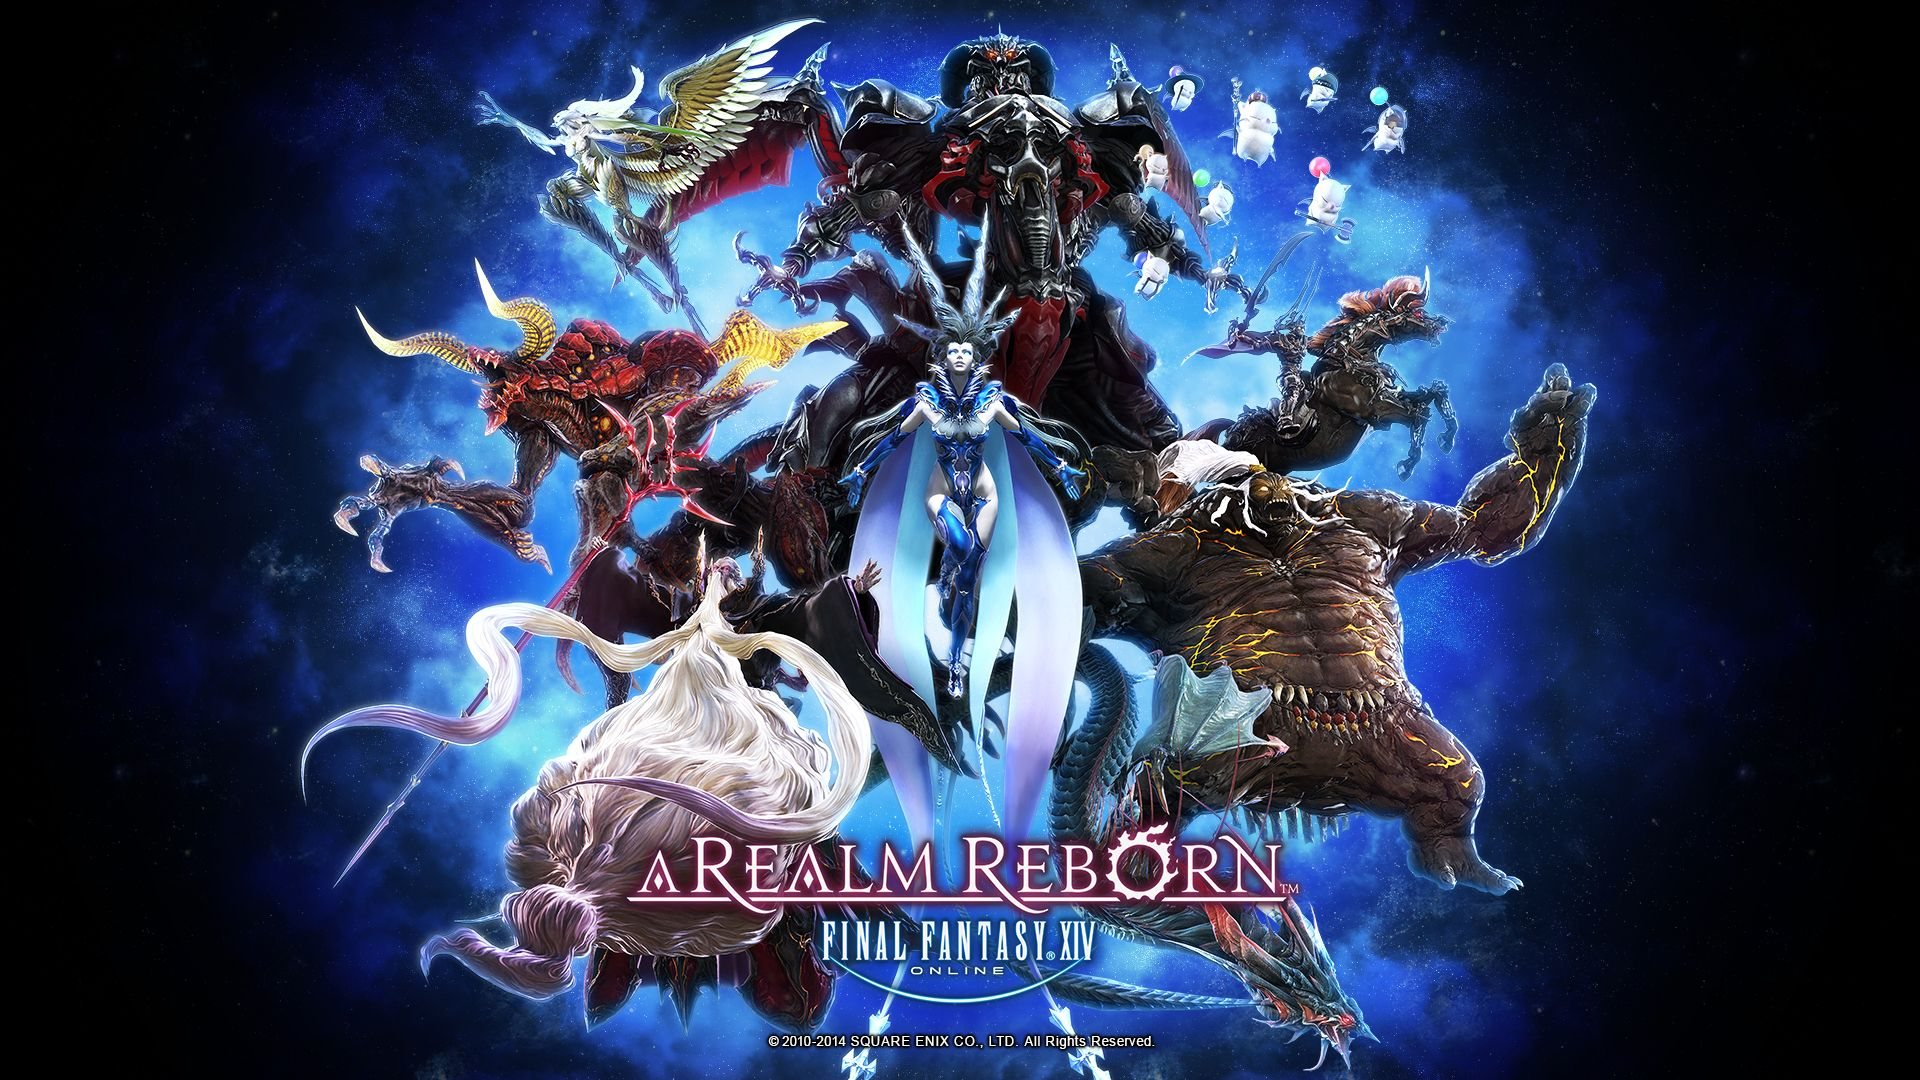 Ffxiv a realm reborn wallpaper hd wallpapers pinterest final ffxiv a realm reborn wallpaper voltagebd Image collections